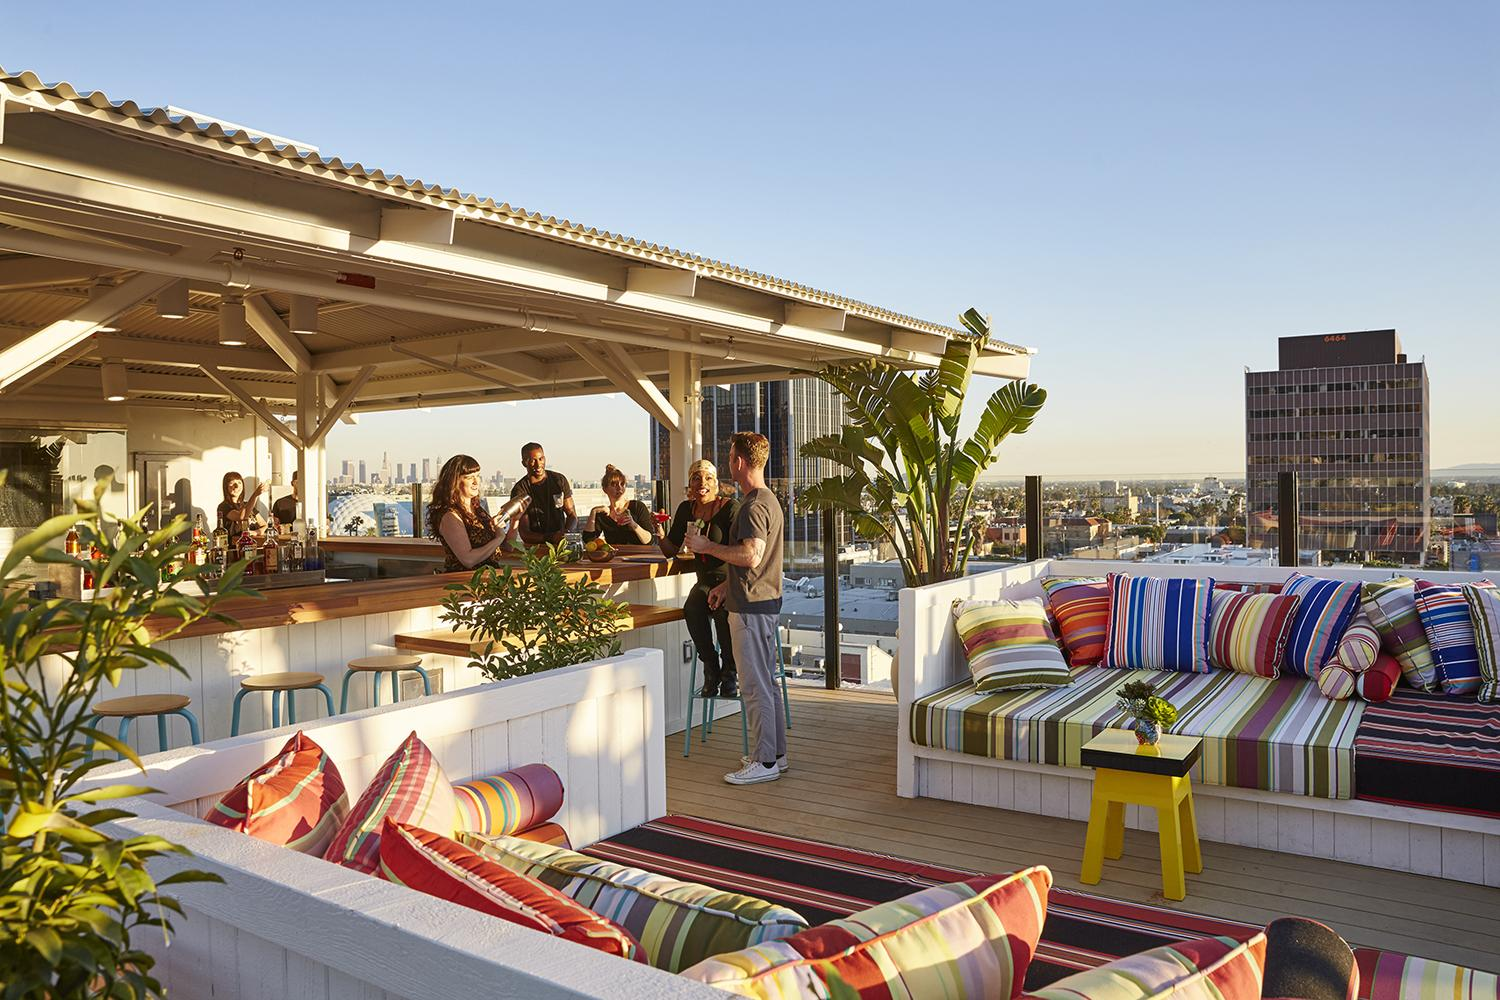 The Best Rooftop Bars To Visit In Los Angeles